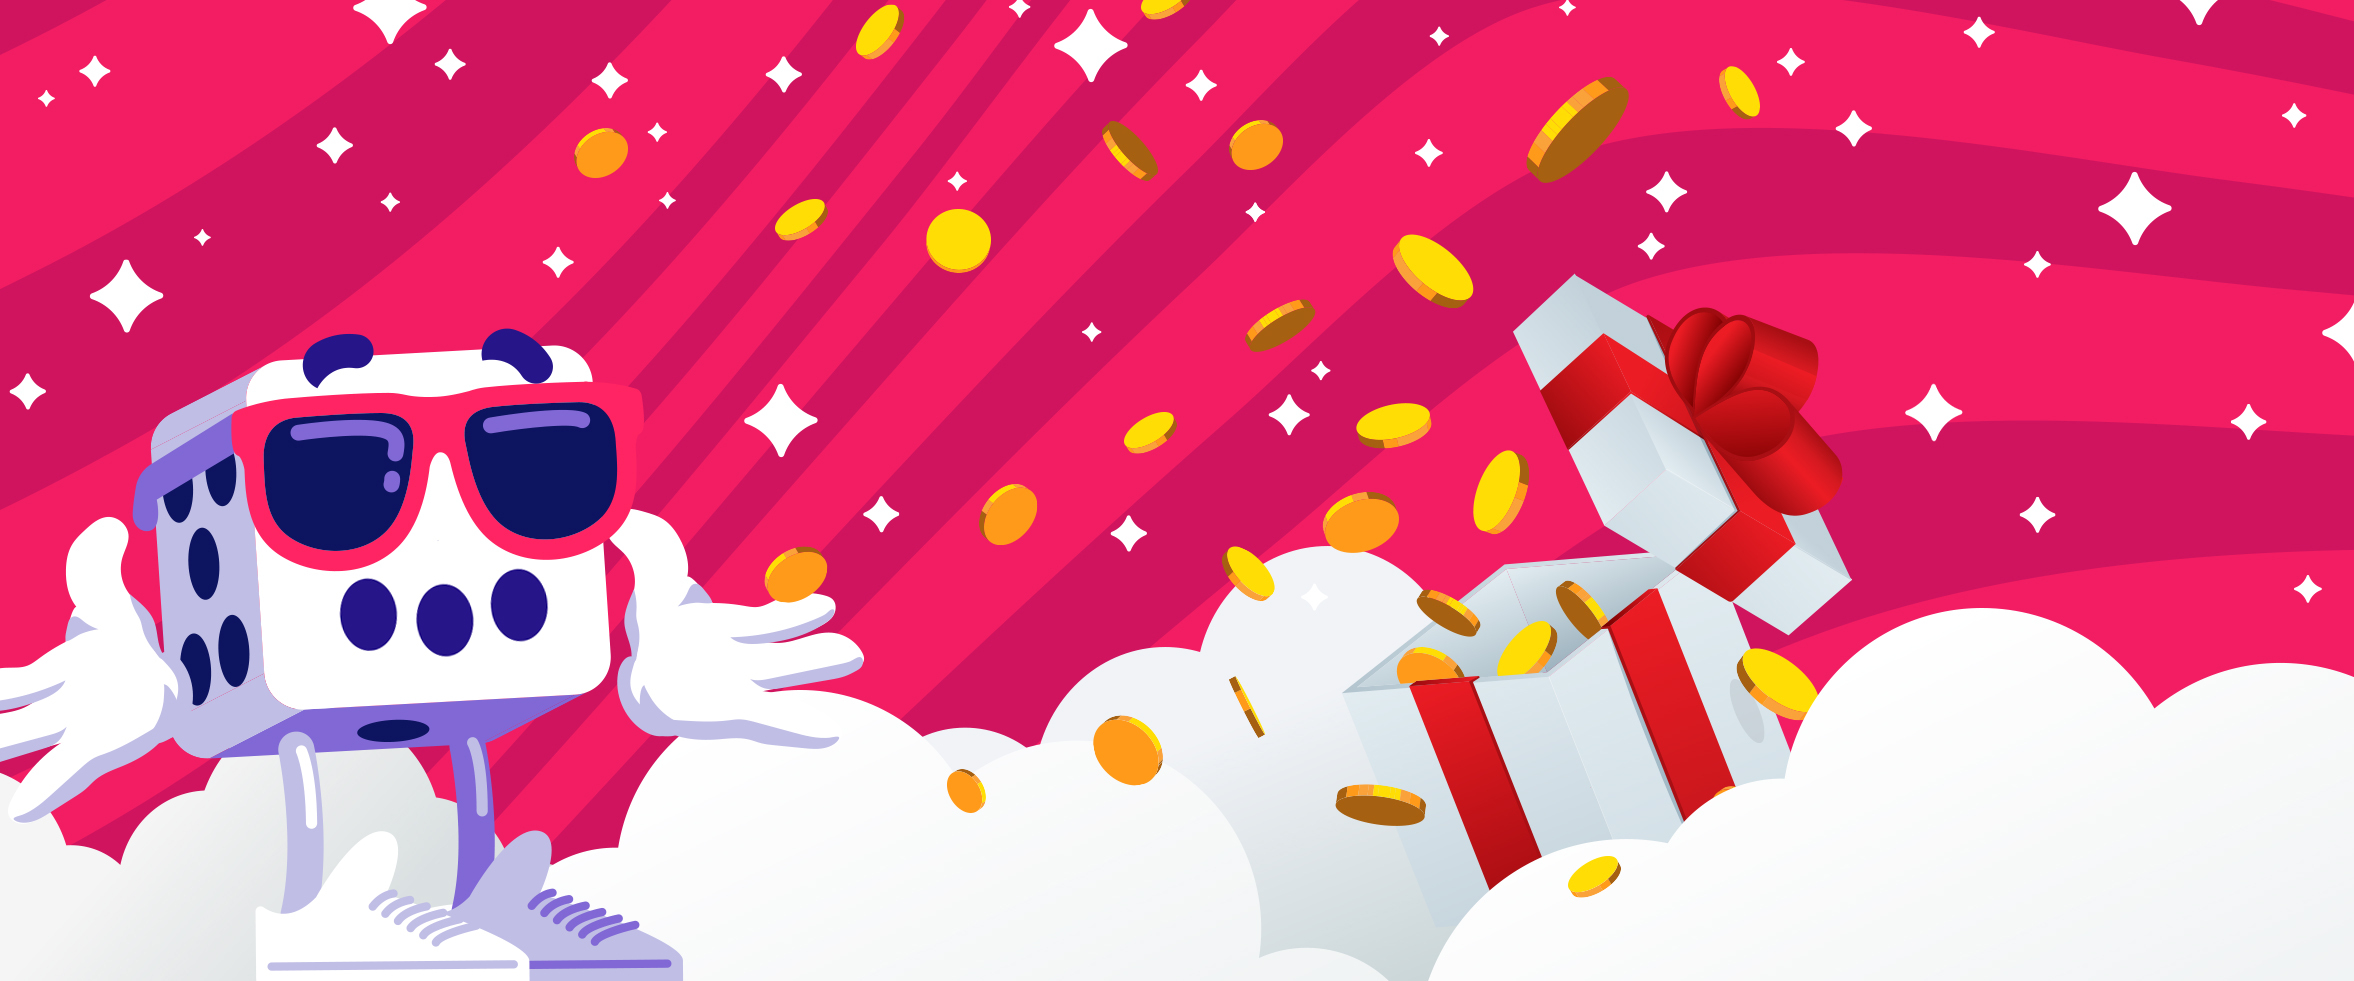 🎄 Get 800 Free Spins This Holiday Season!